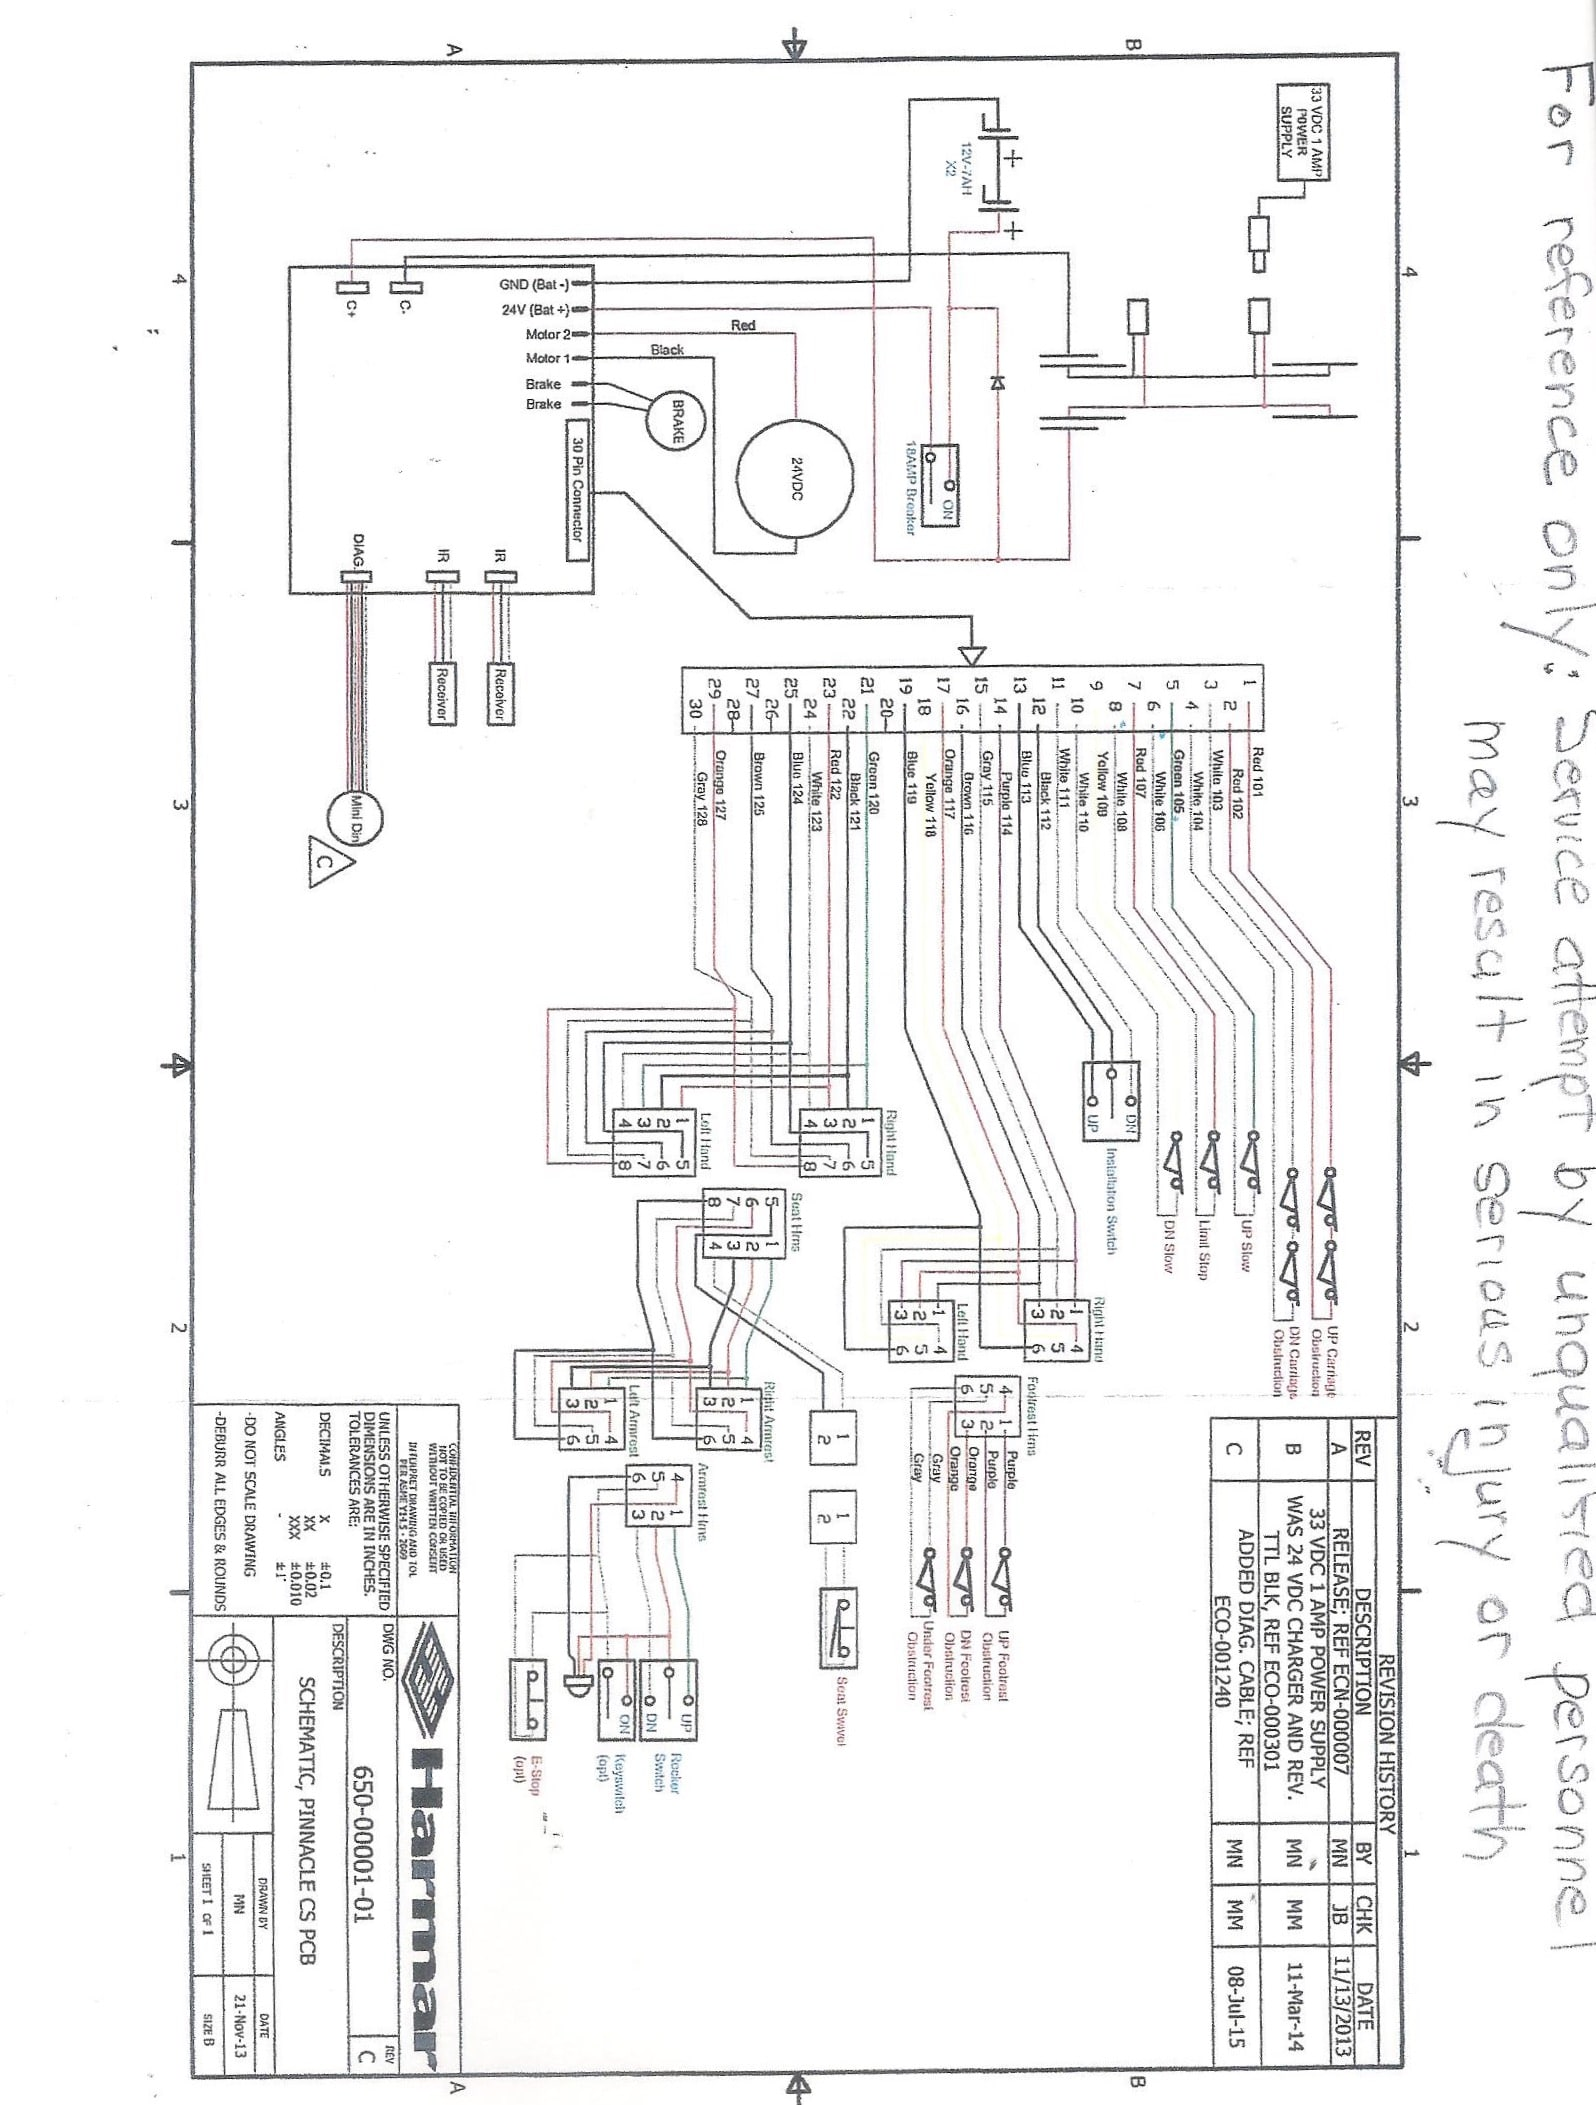 Liberty Stair Lift Wiring Diagram. snorkel lift wiring diagram unique wiring  diagram image. tommy lift schematic wiring diagram database. patent  us2888099 chair lift google patents. grote turn signal switch wiring  diagram wiringdiagram.2002-acura-tl-radio.info